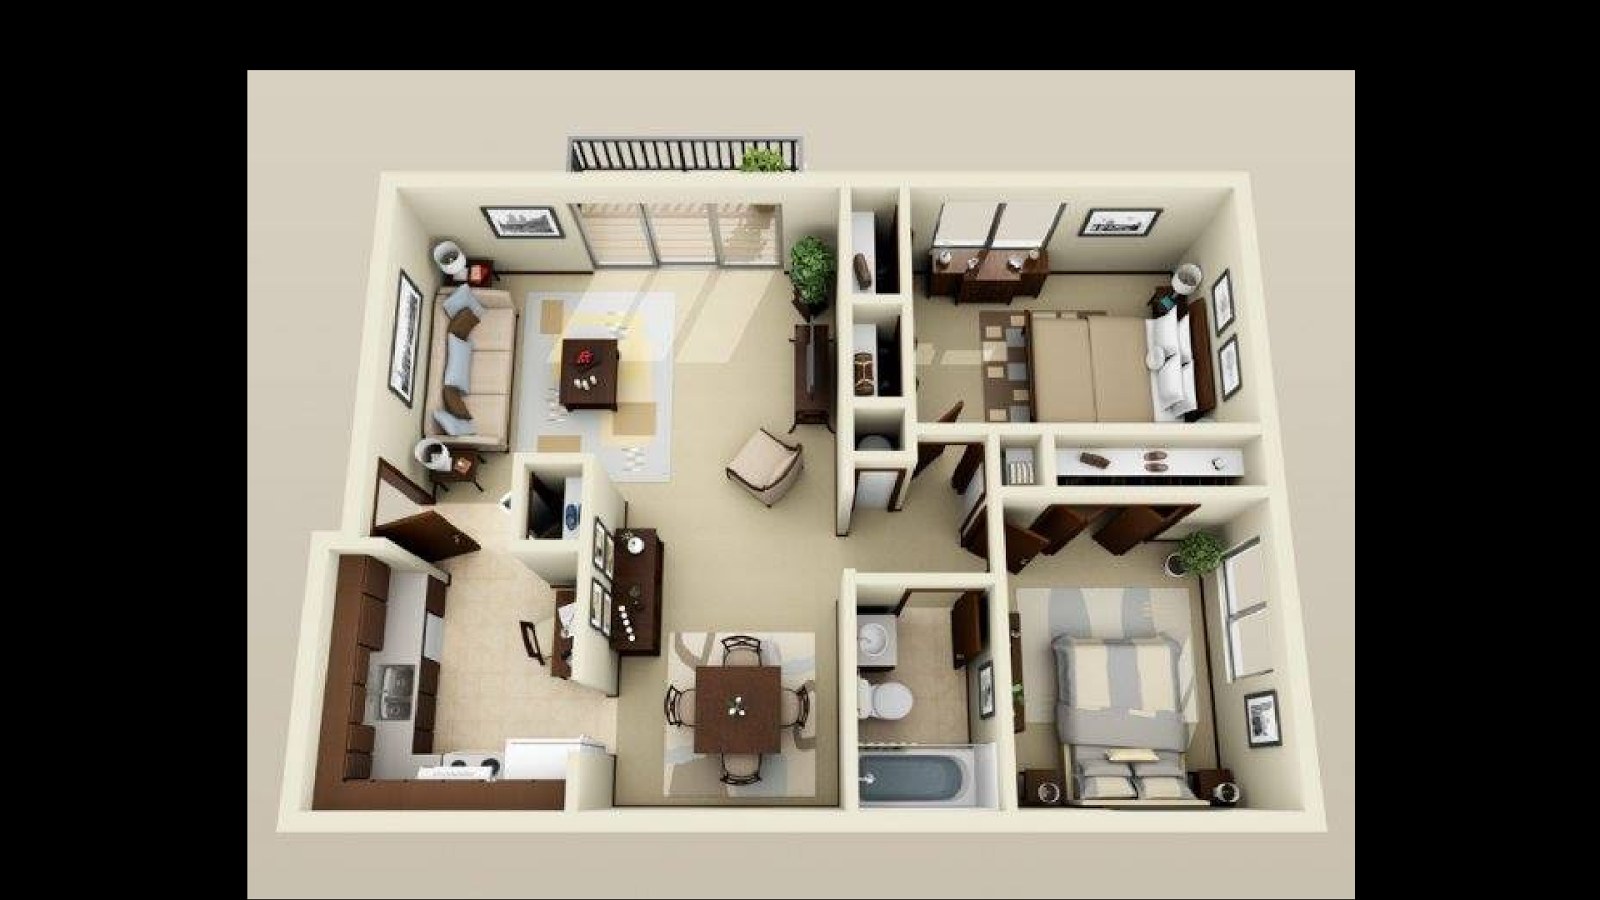 House design picture - 3d House Design Screenshot